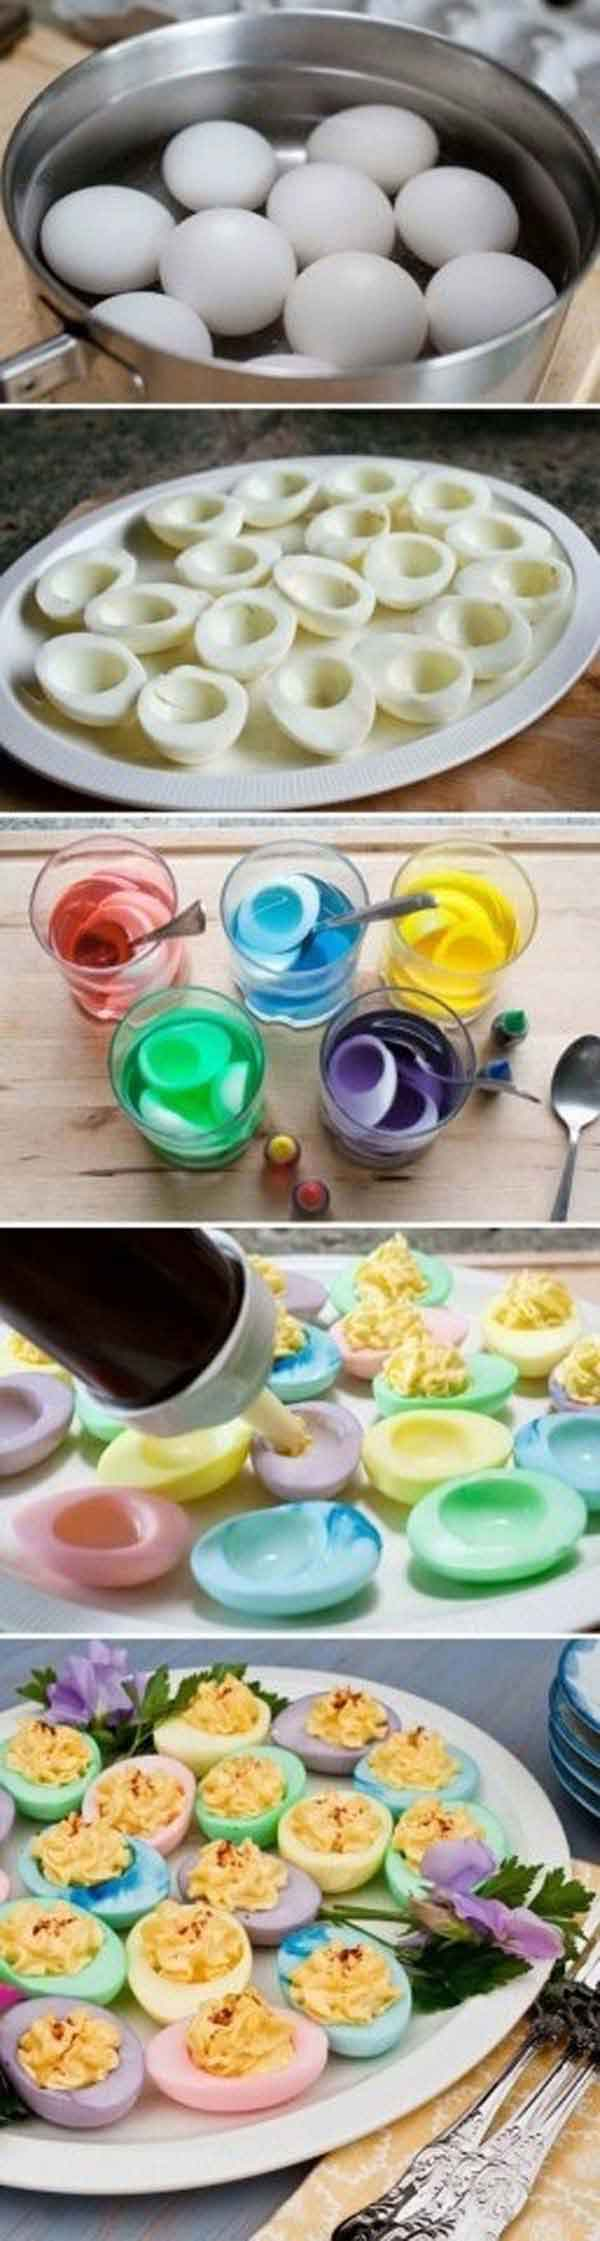 use natural food coloring methods to color up your dishes